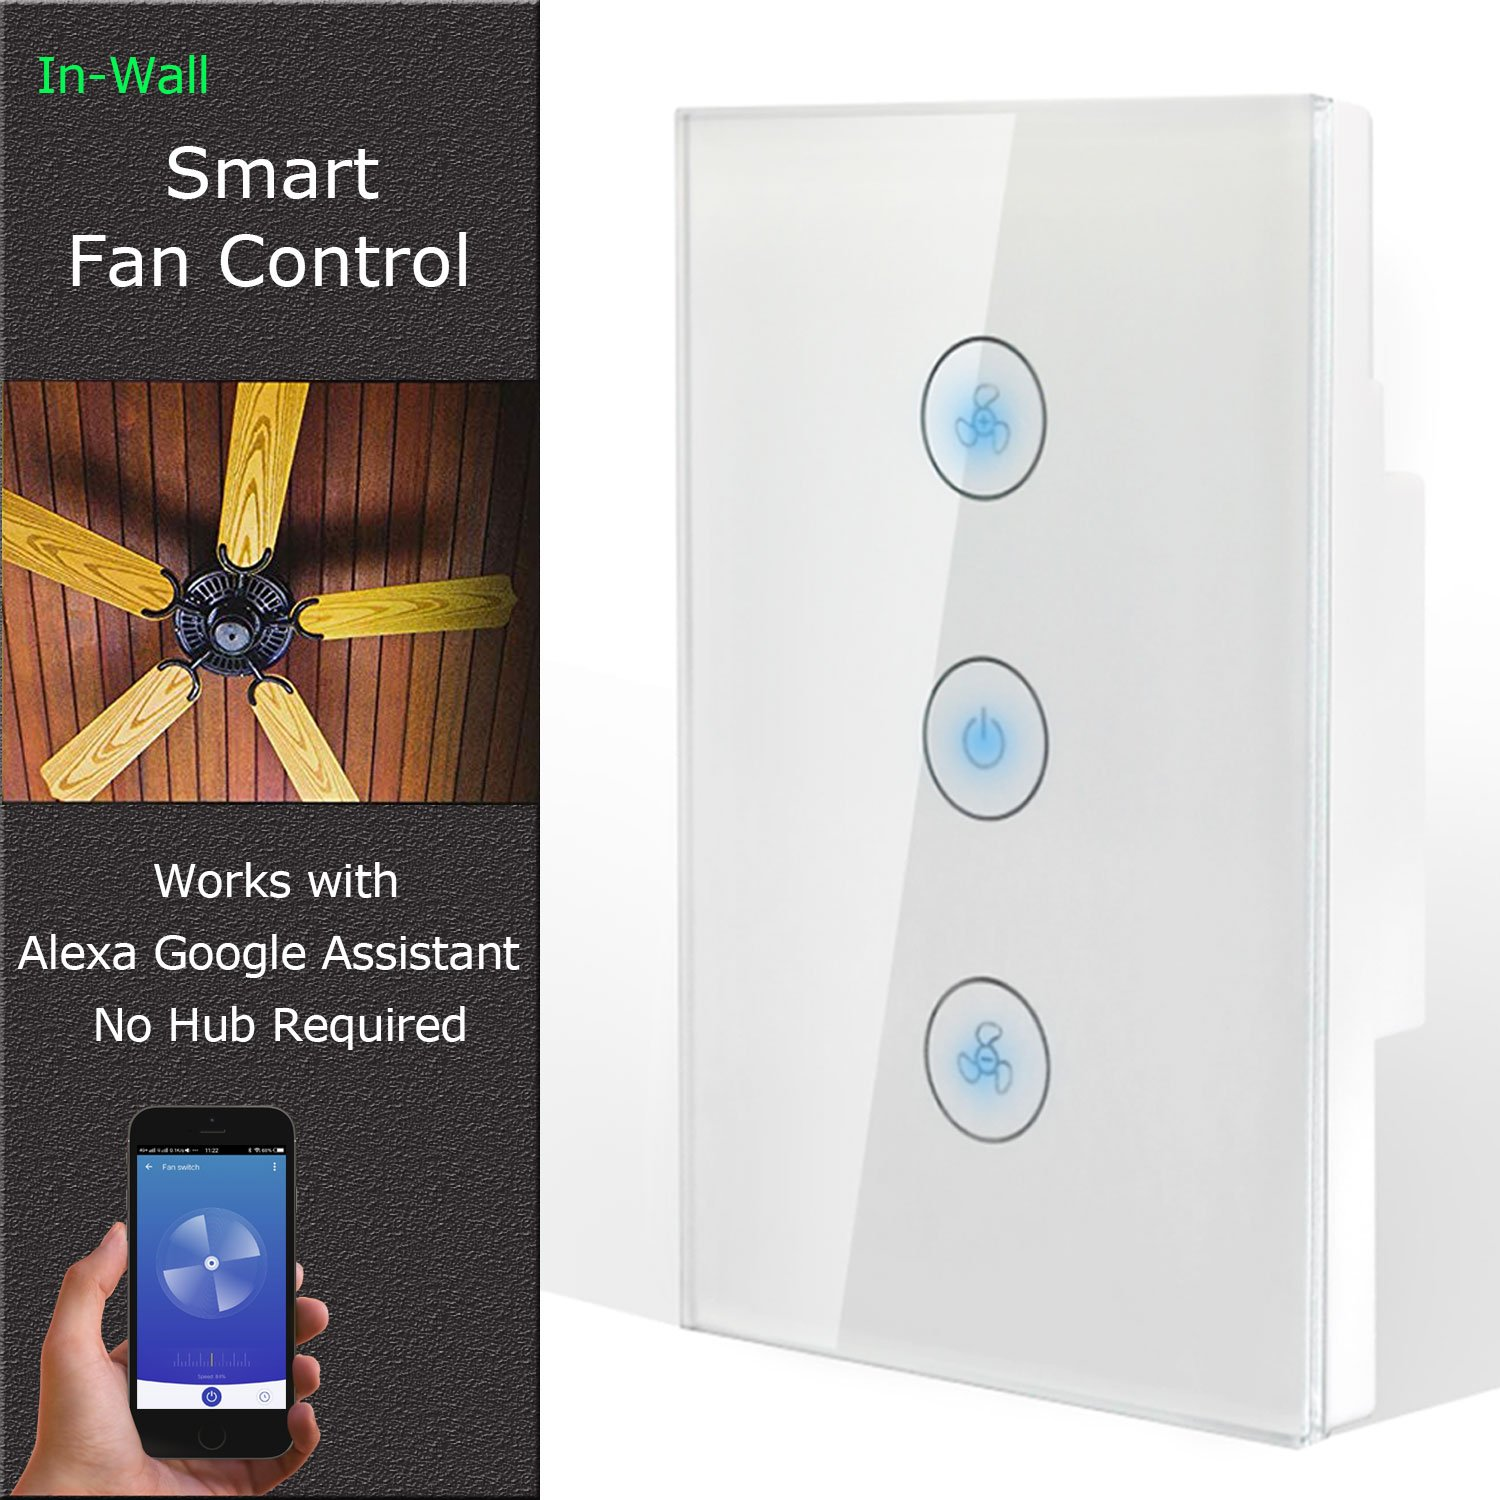 Smart Fan Speed Control Compatible with Alexa and Google Assistant, IFTTT, Wifi Enabled Variable Ceiling Fan Switch, In Wall, Touch Panel, No Hub Required